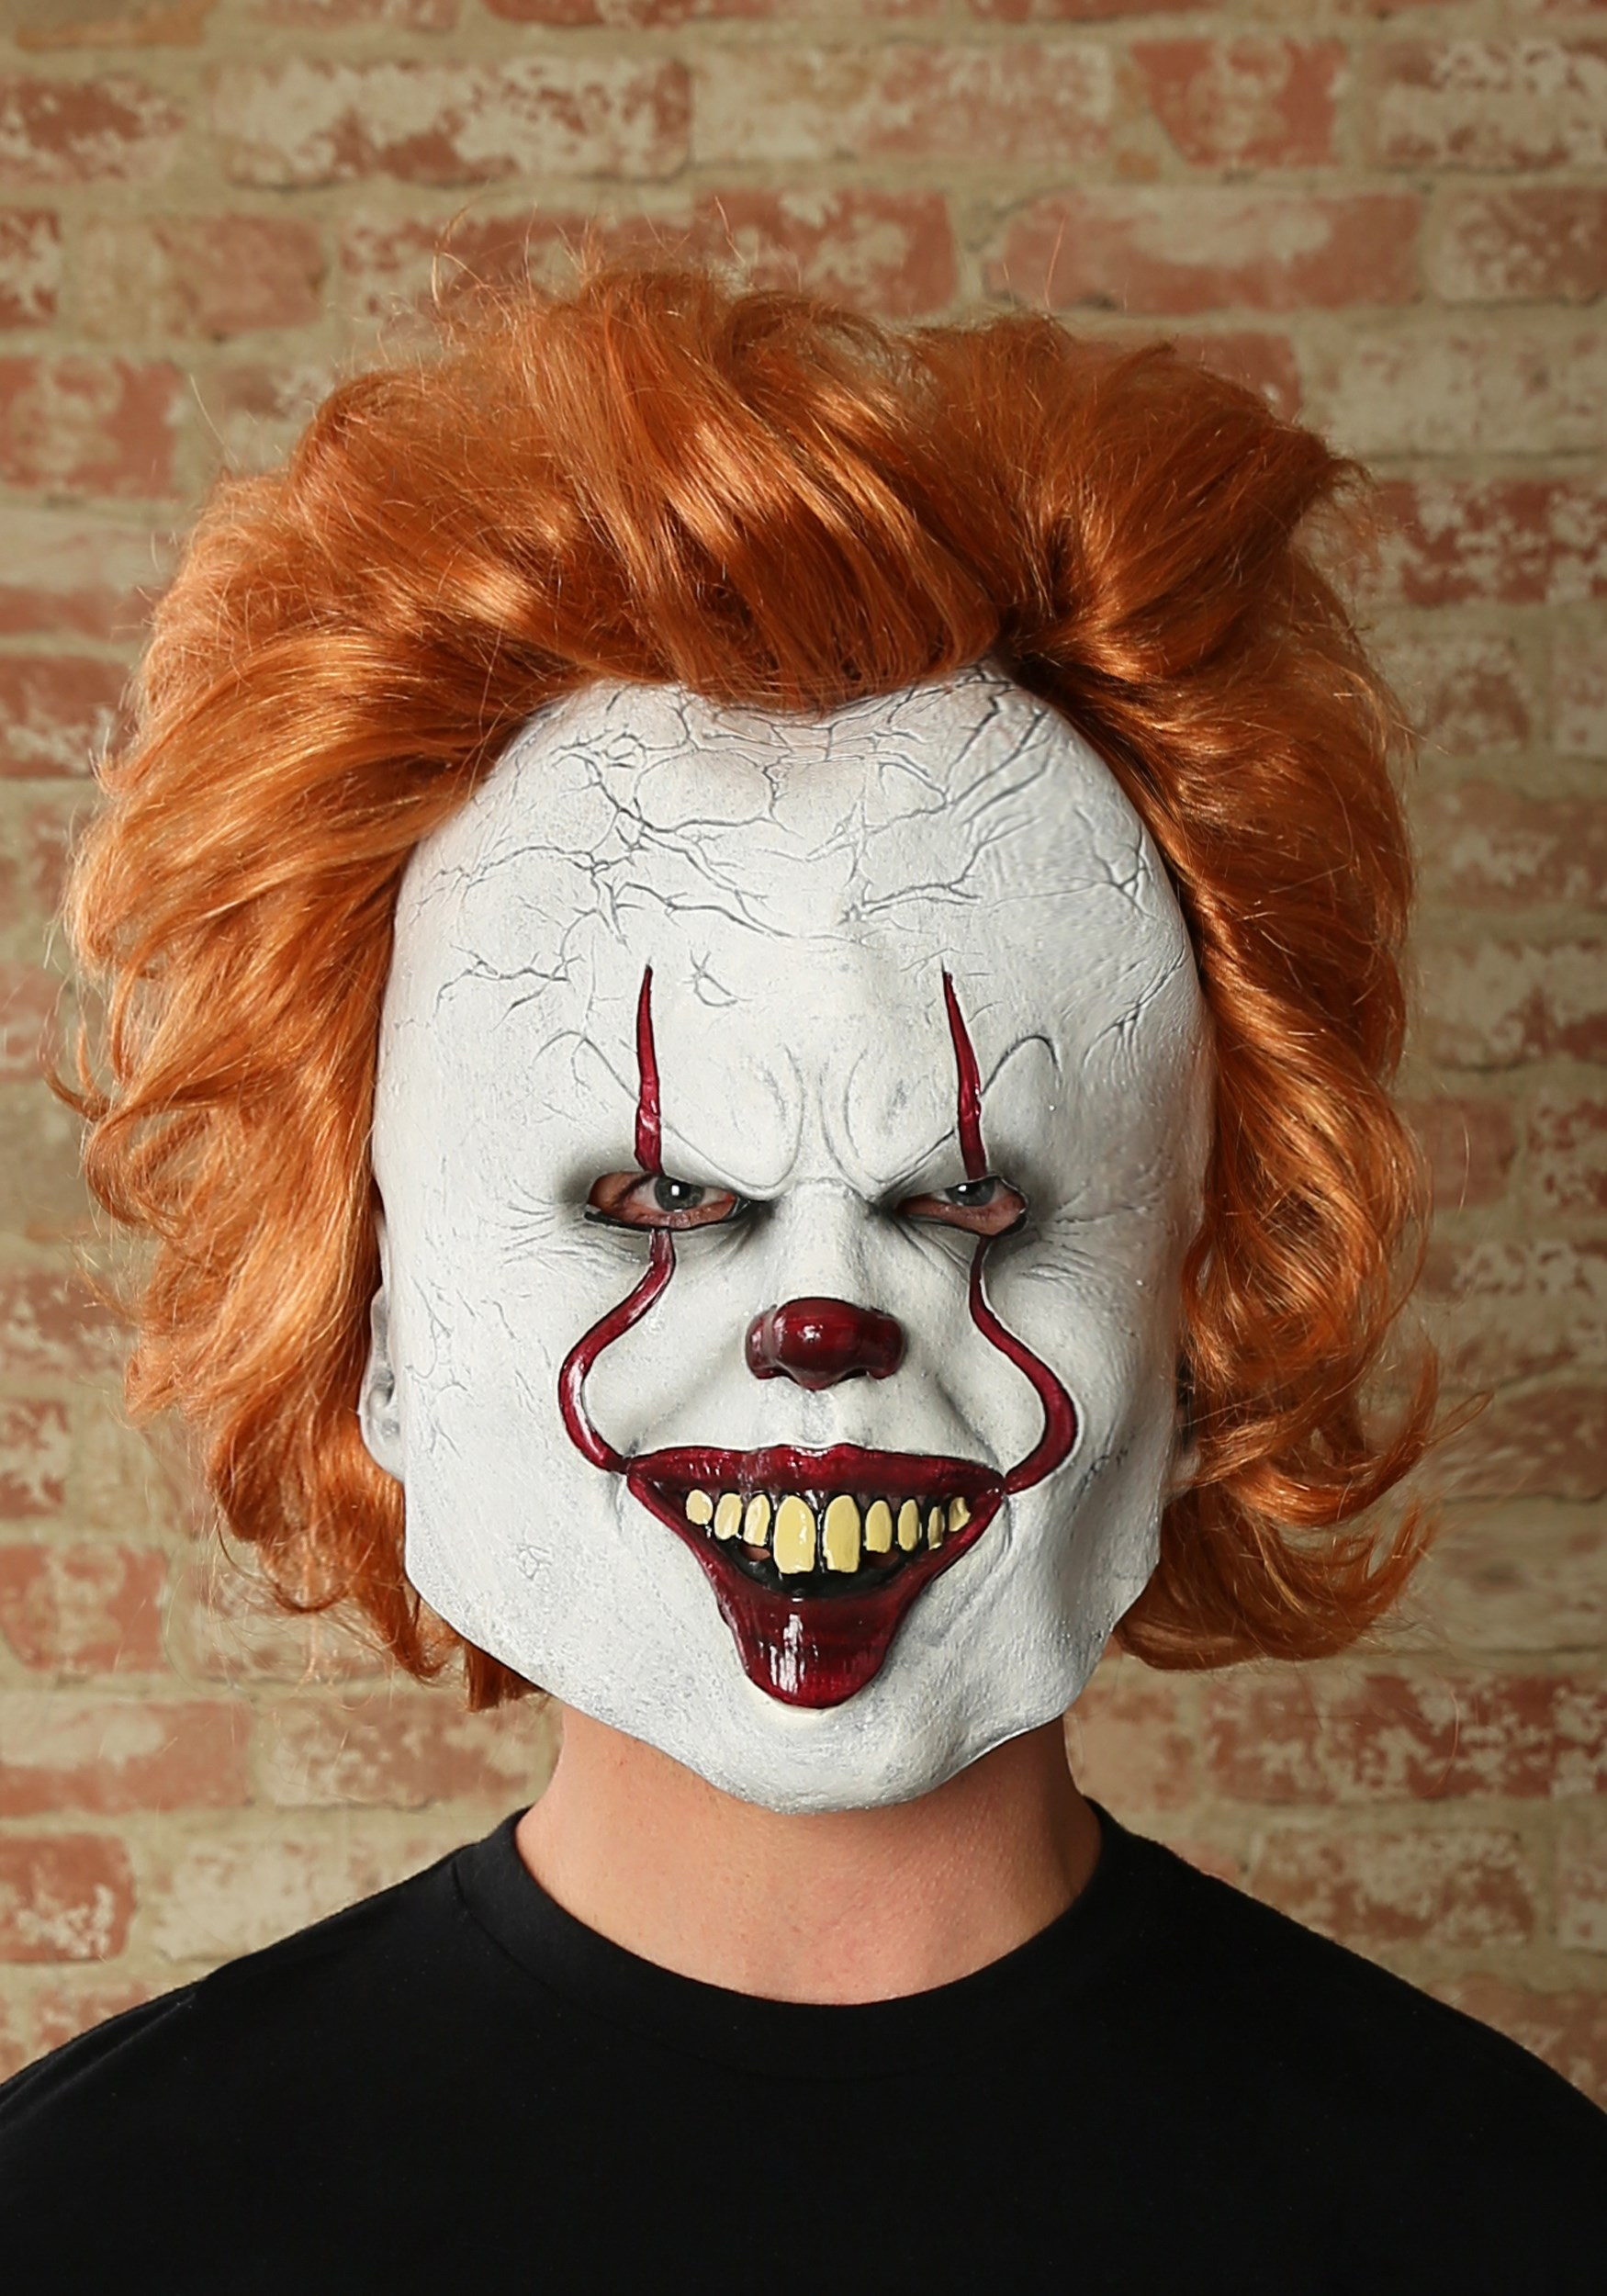 IT Movie Pennywise Deluxe Mask for Adults